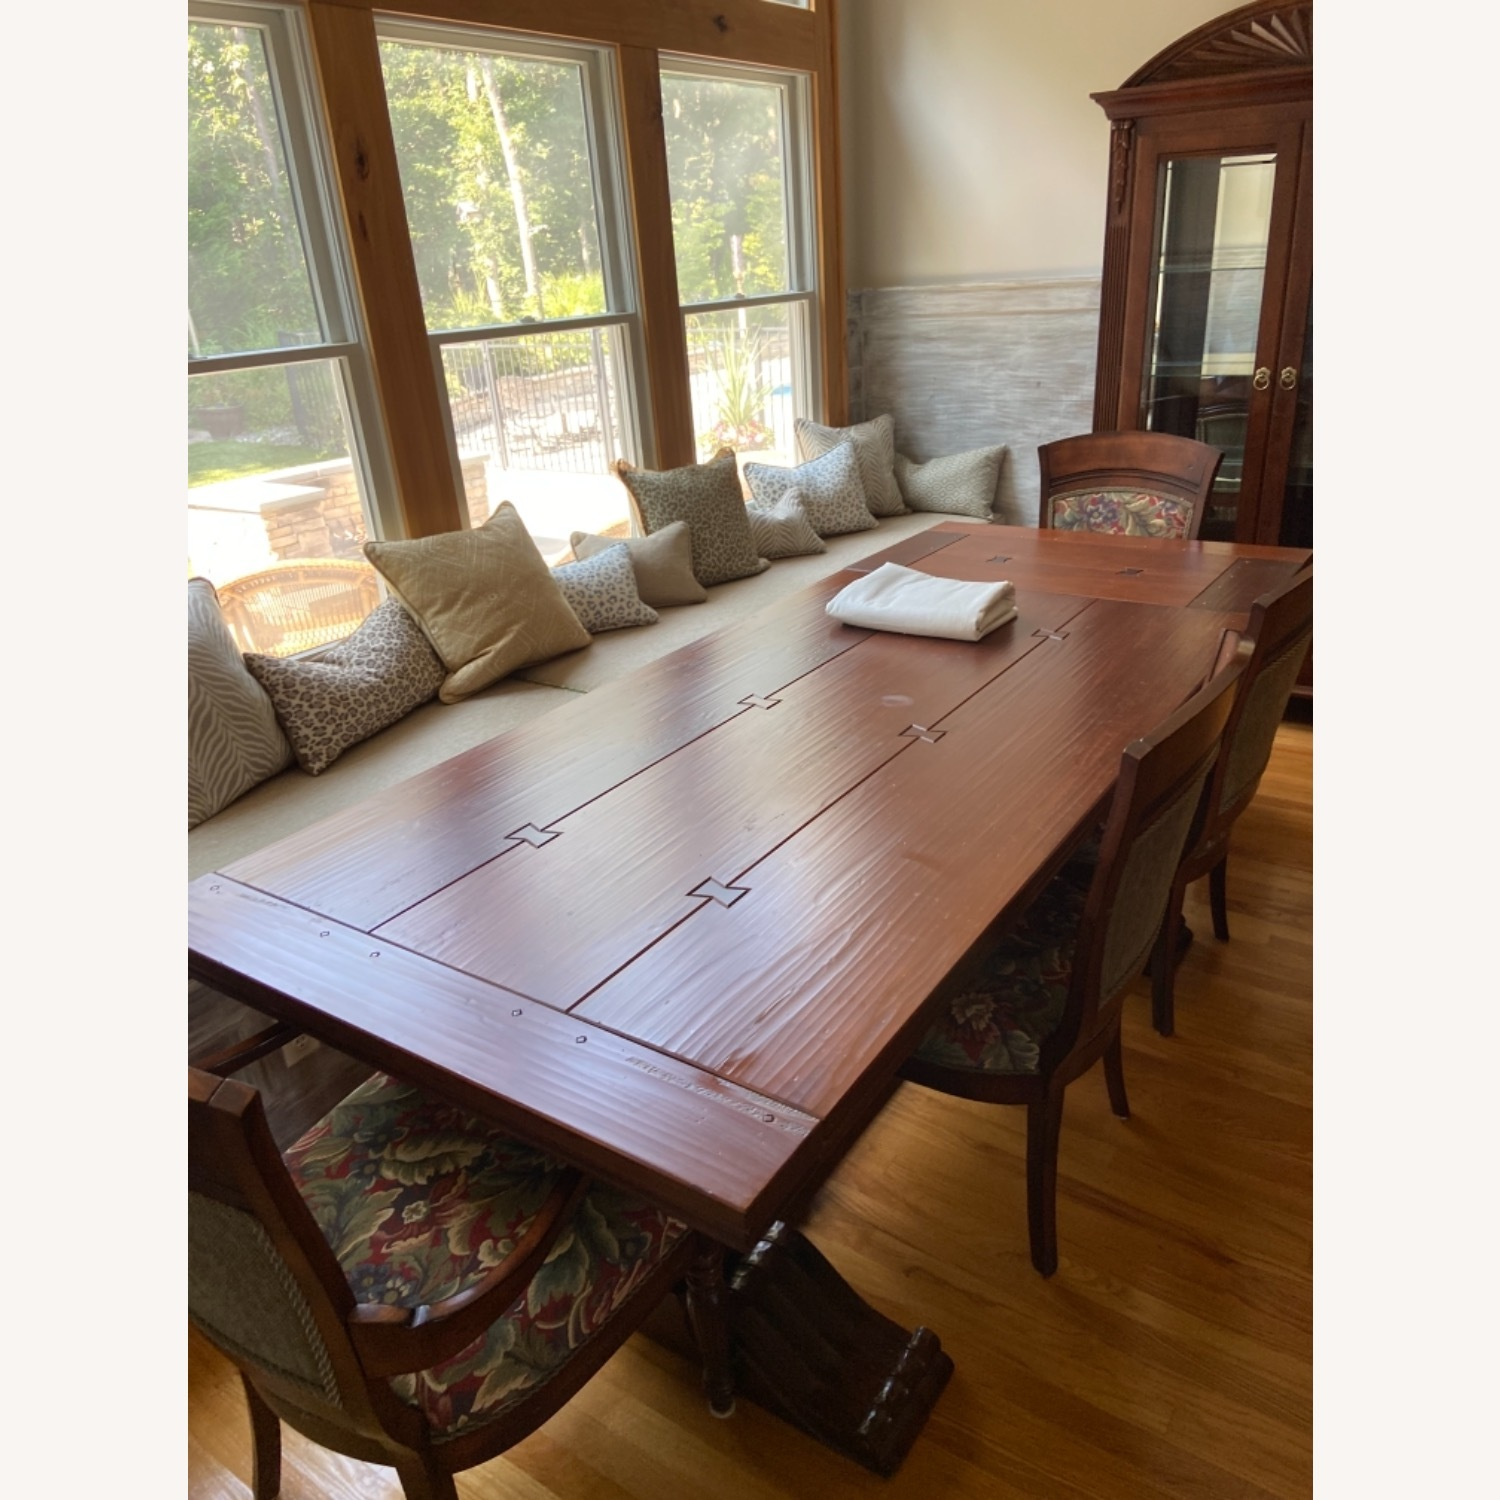 Ethan Allen Dining Table and Chairs - image-1